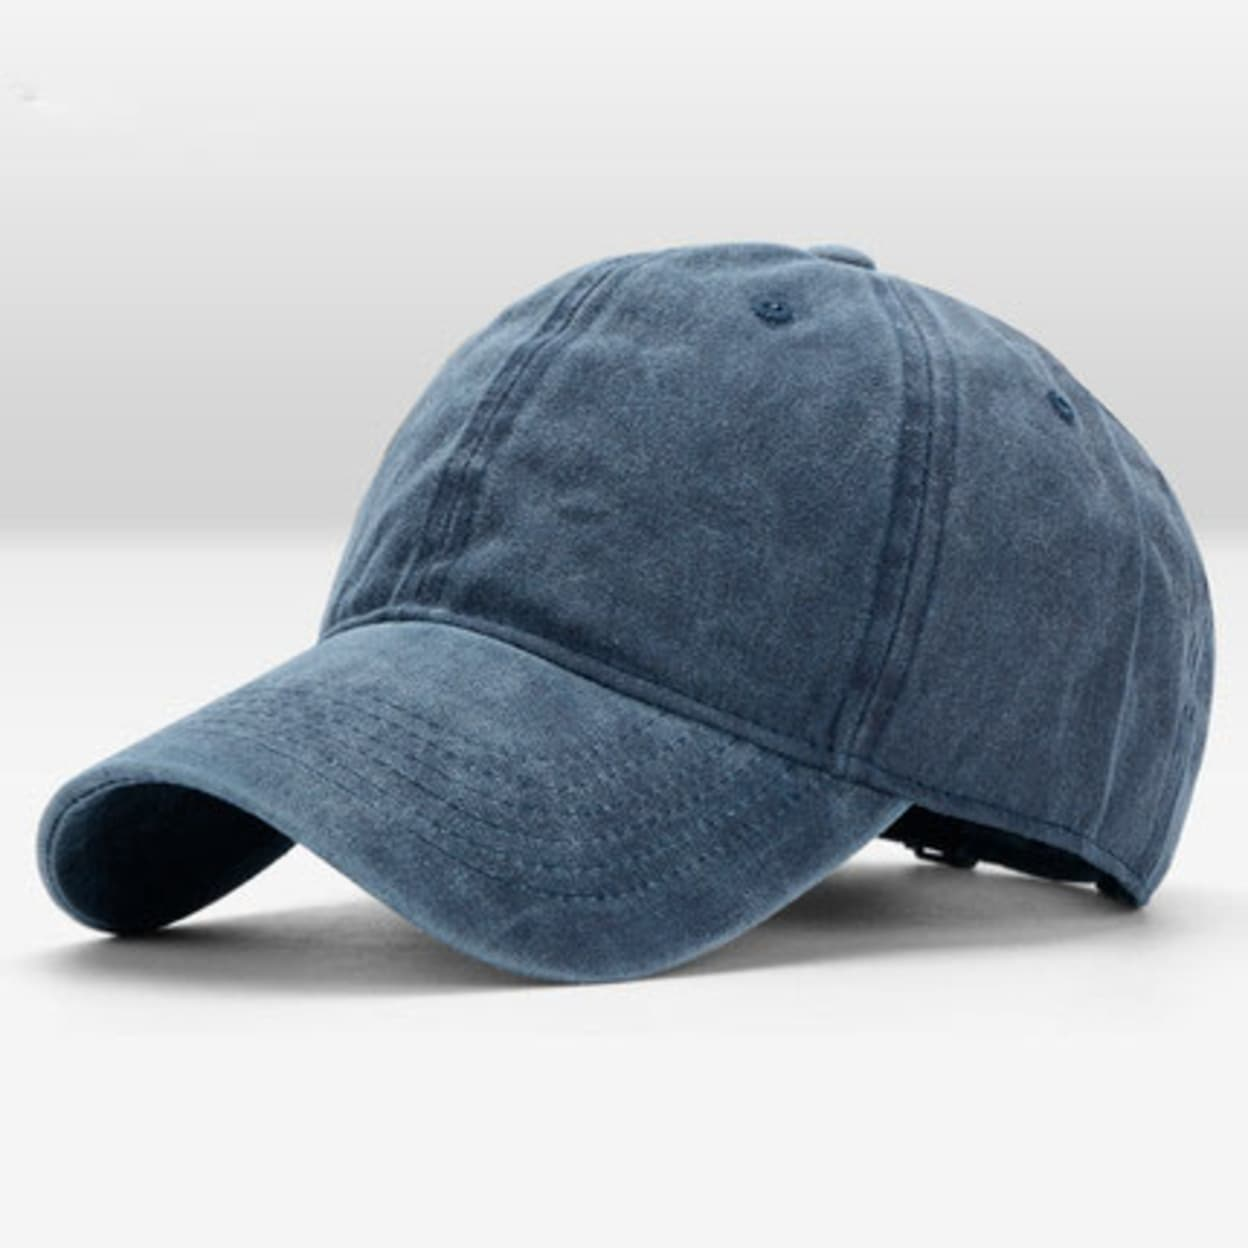 3bf7f4042d286 Navy Blue Vintage Washed Dyed Cotton Hats Twill Low Profile Plain  Adjustable Women Men Hat Retro Baseball Caps